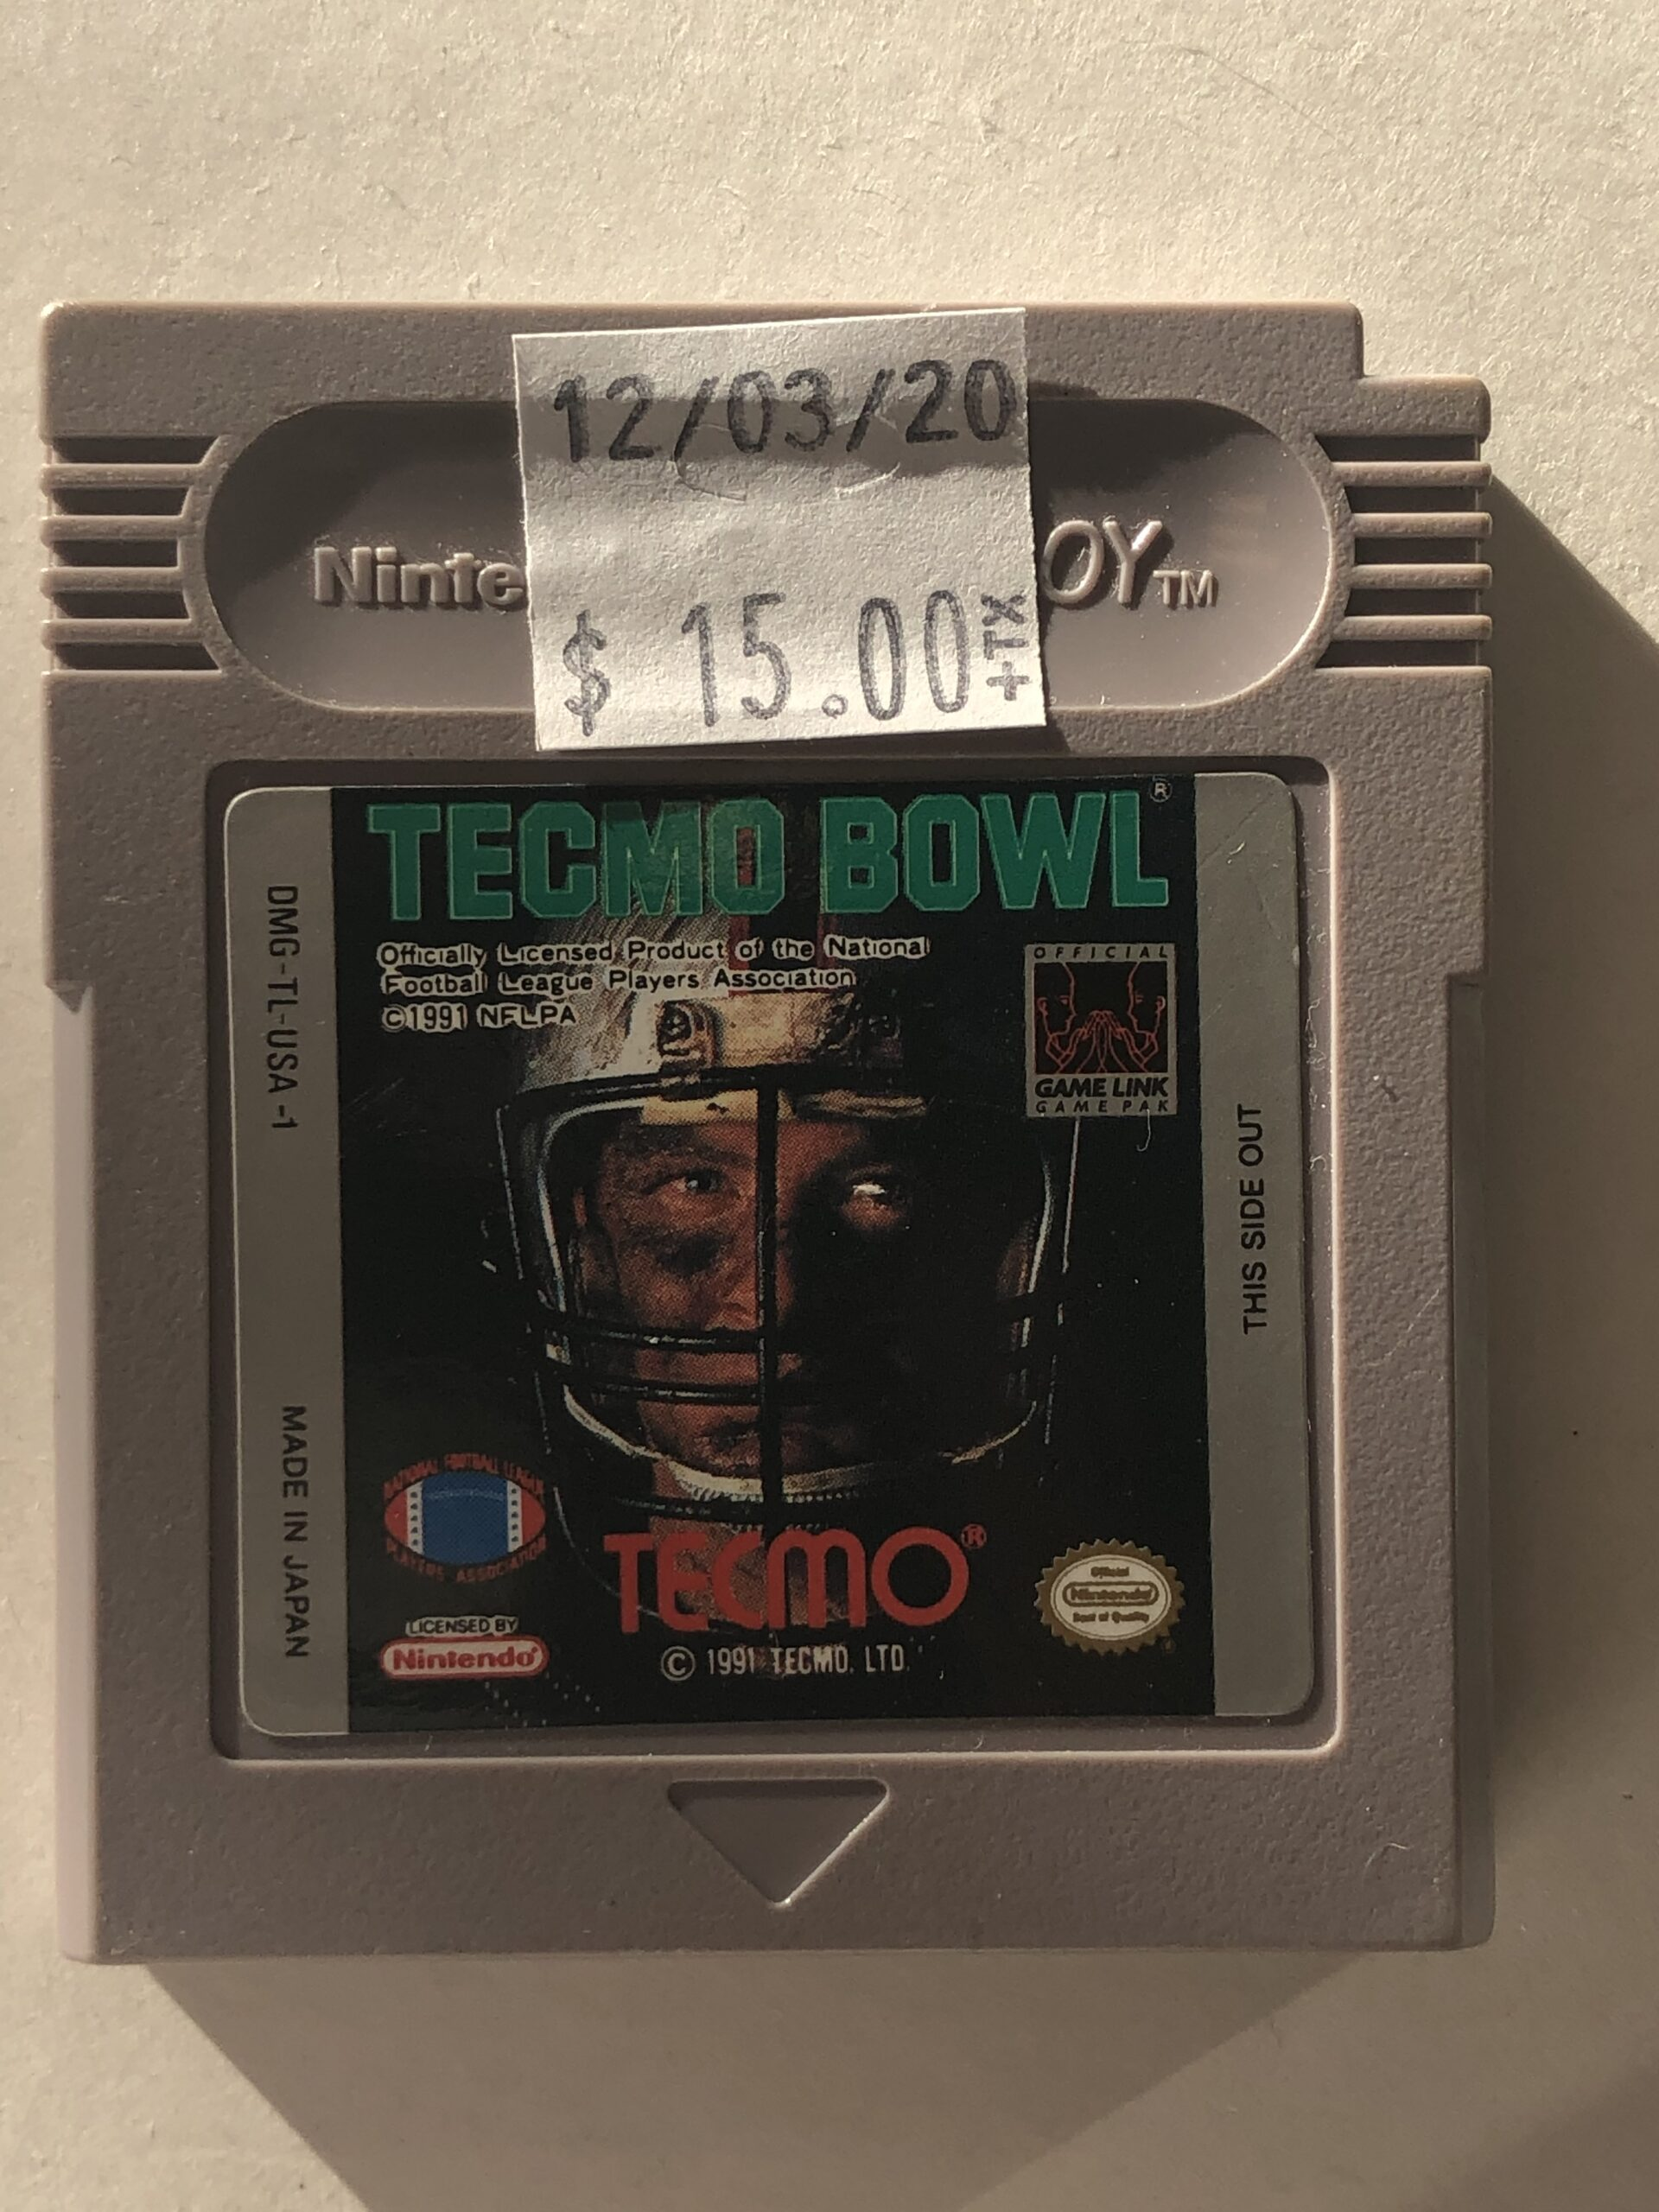 Tecmo Bowl Cartridge Gameboy